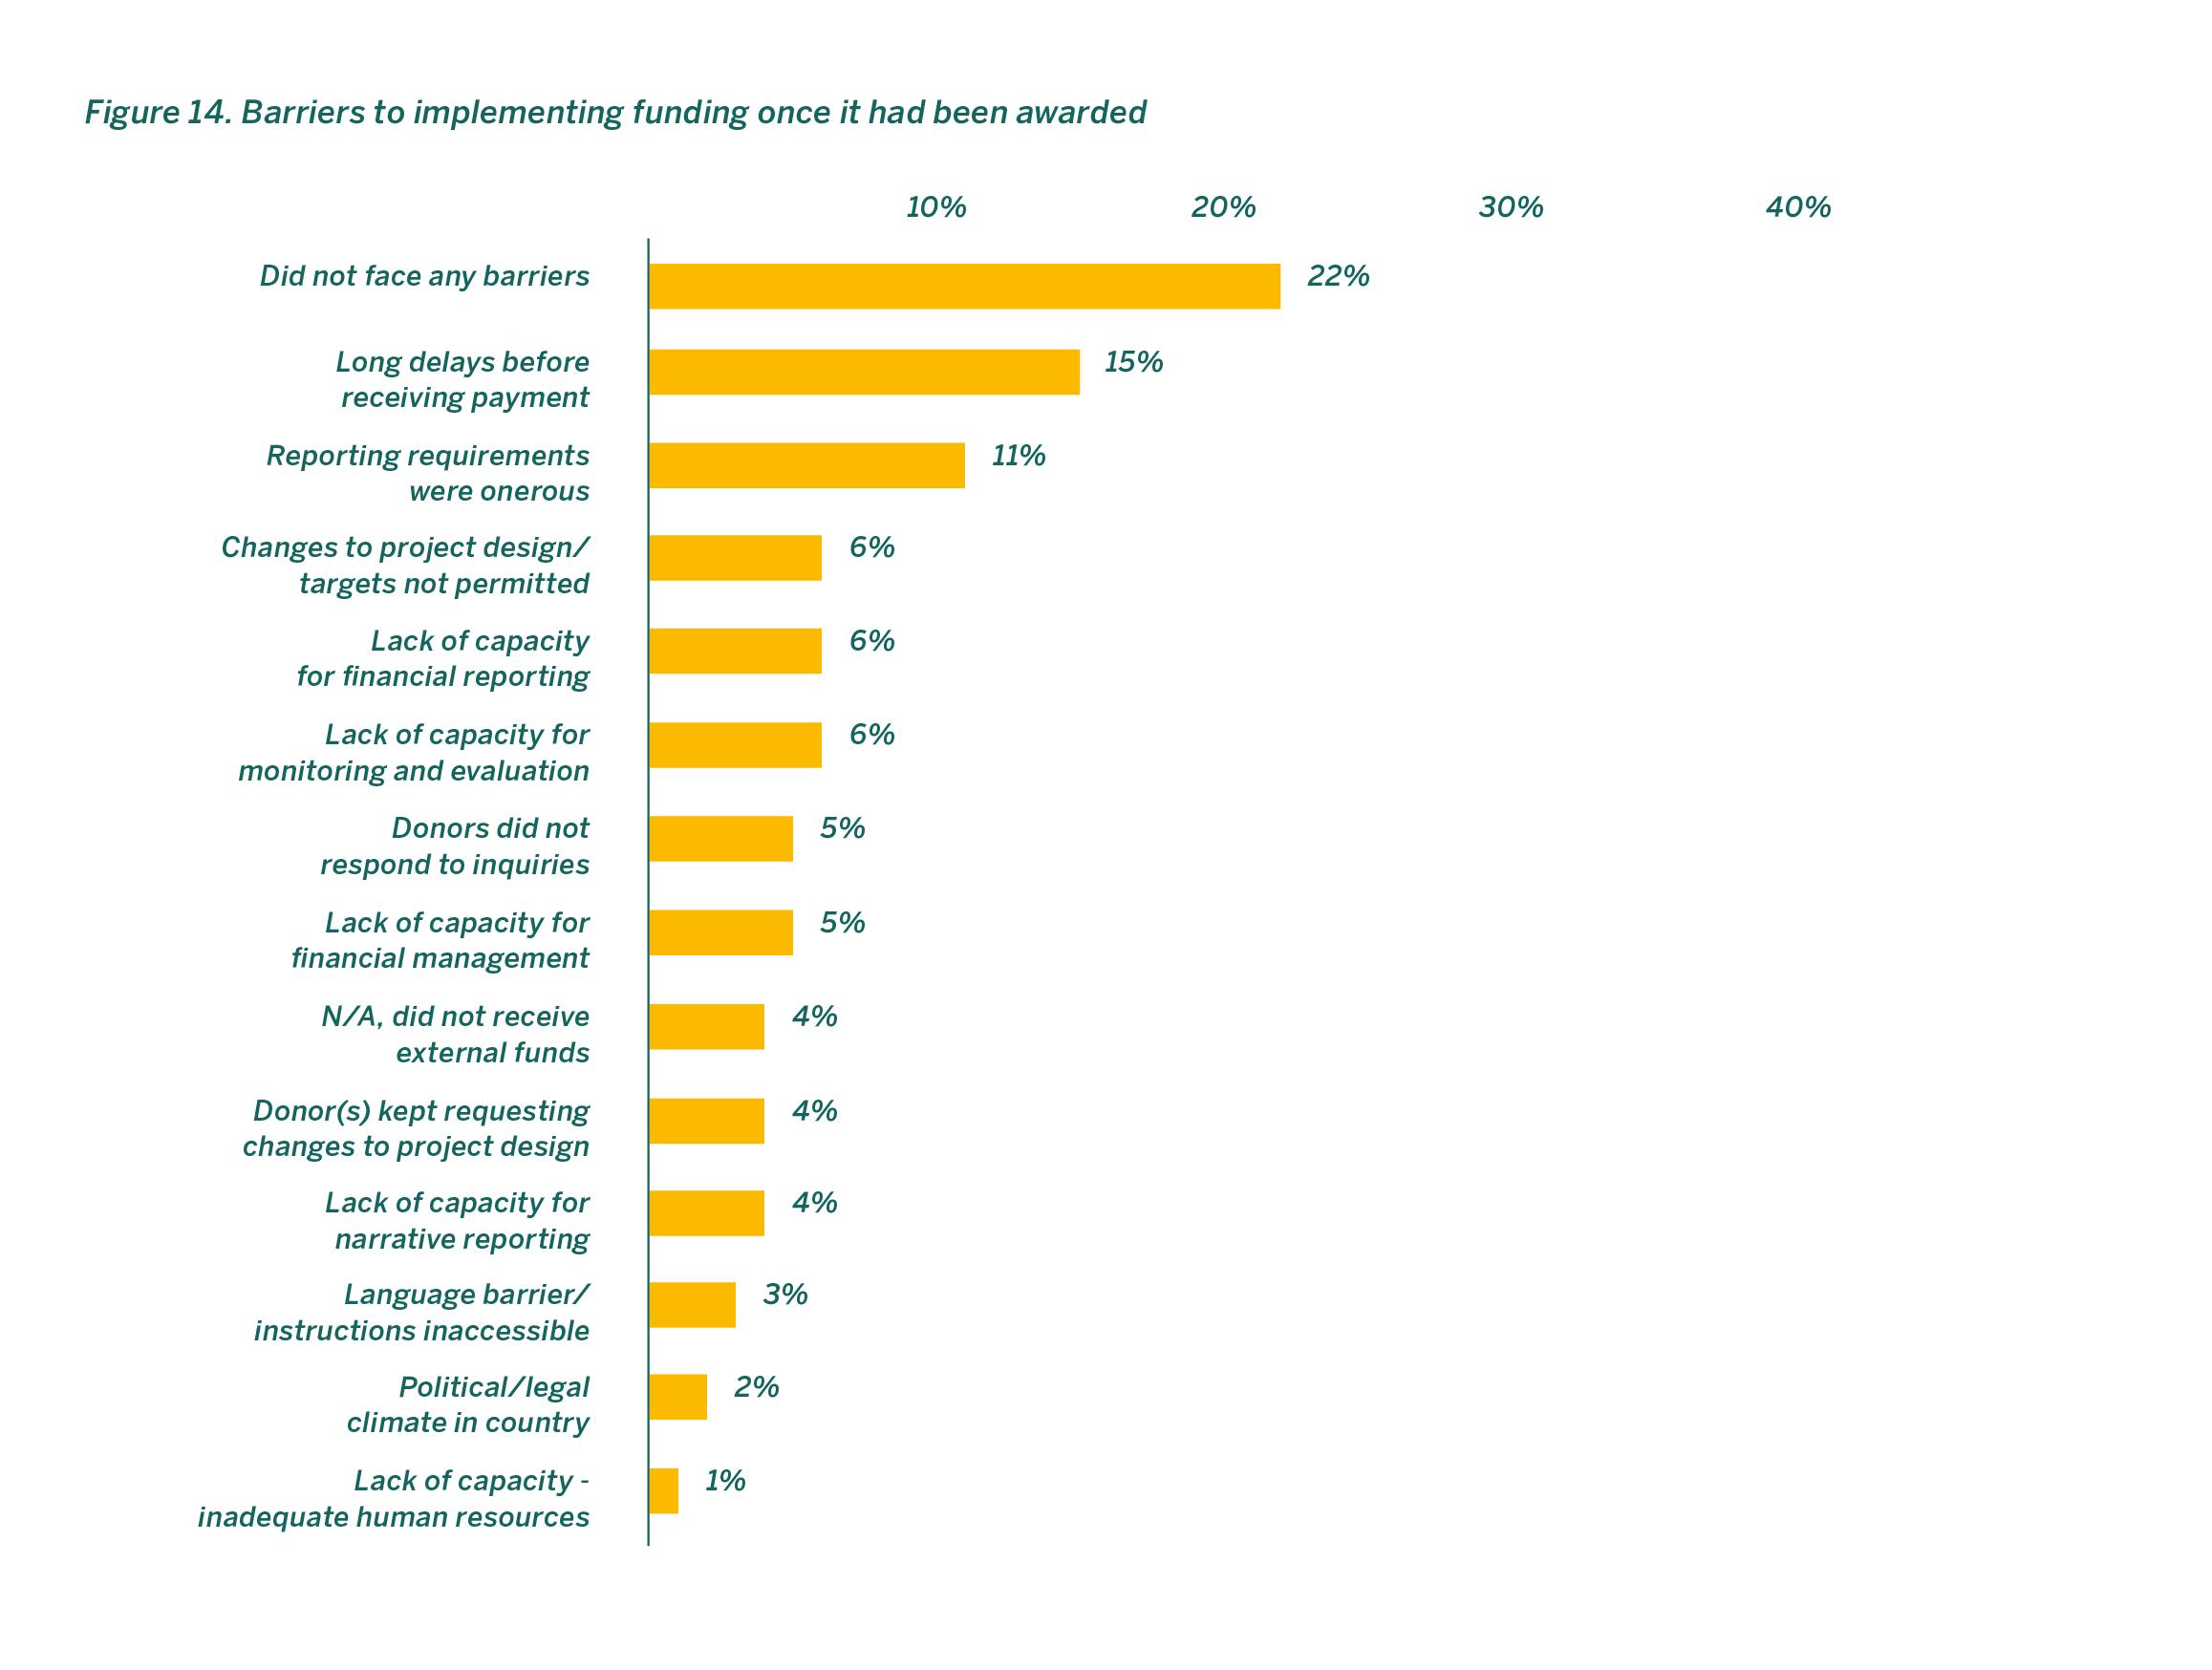 Barriers to implementing funding once it had been awarded